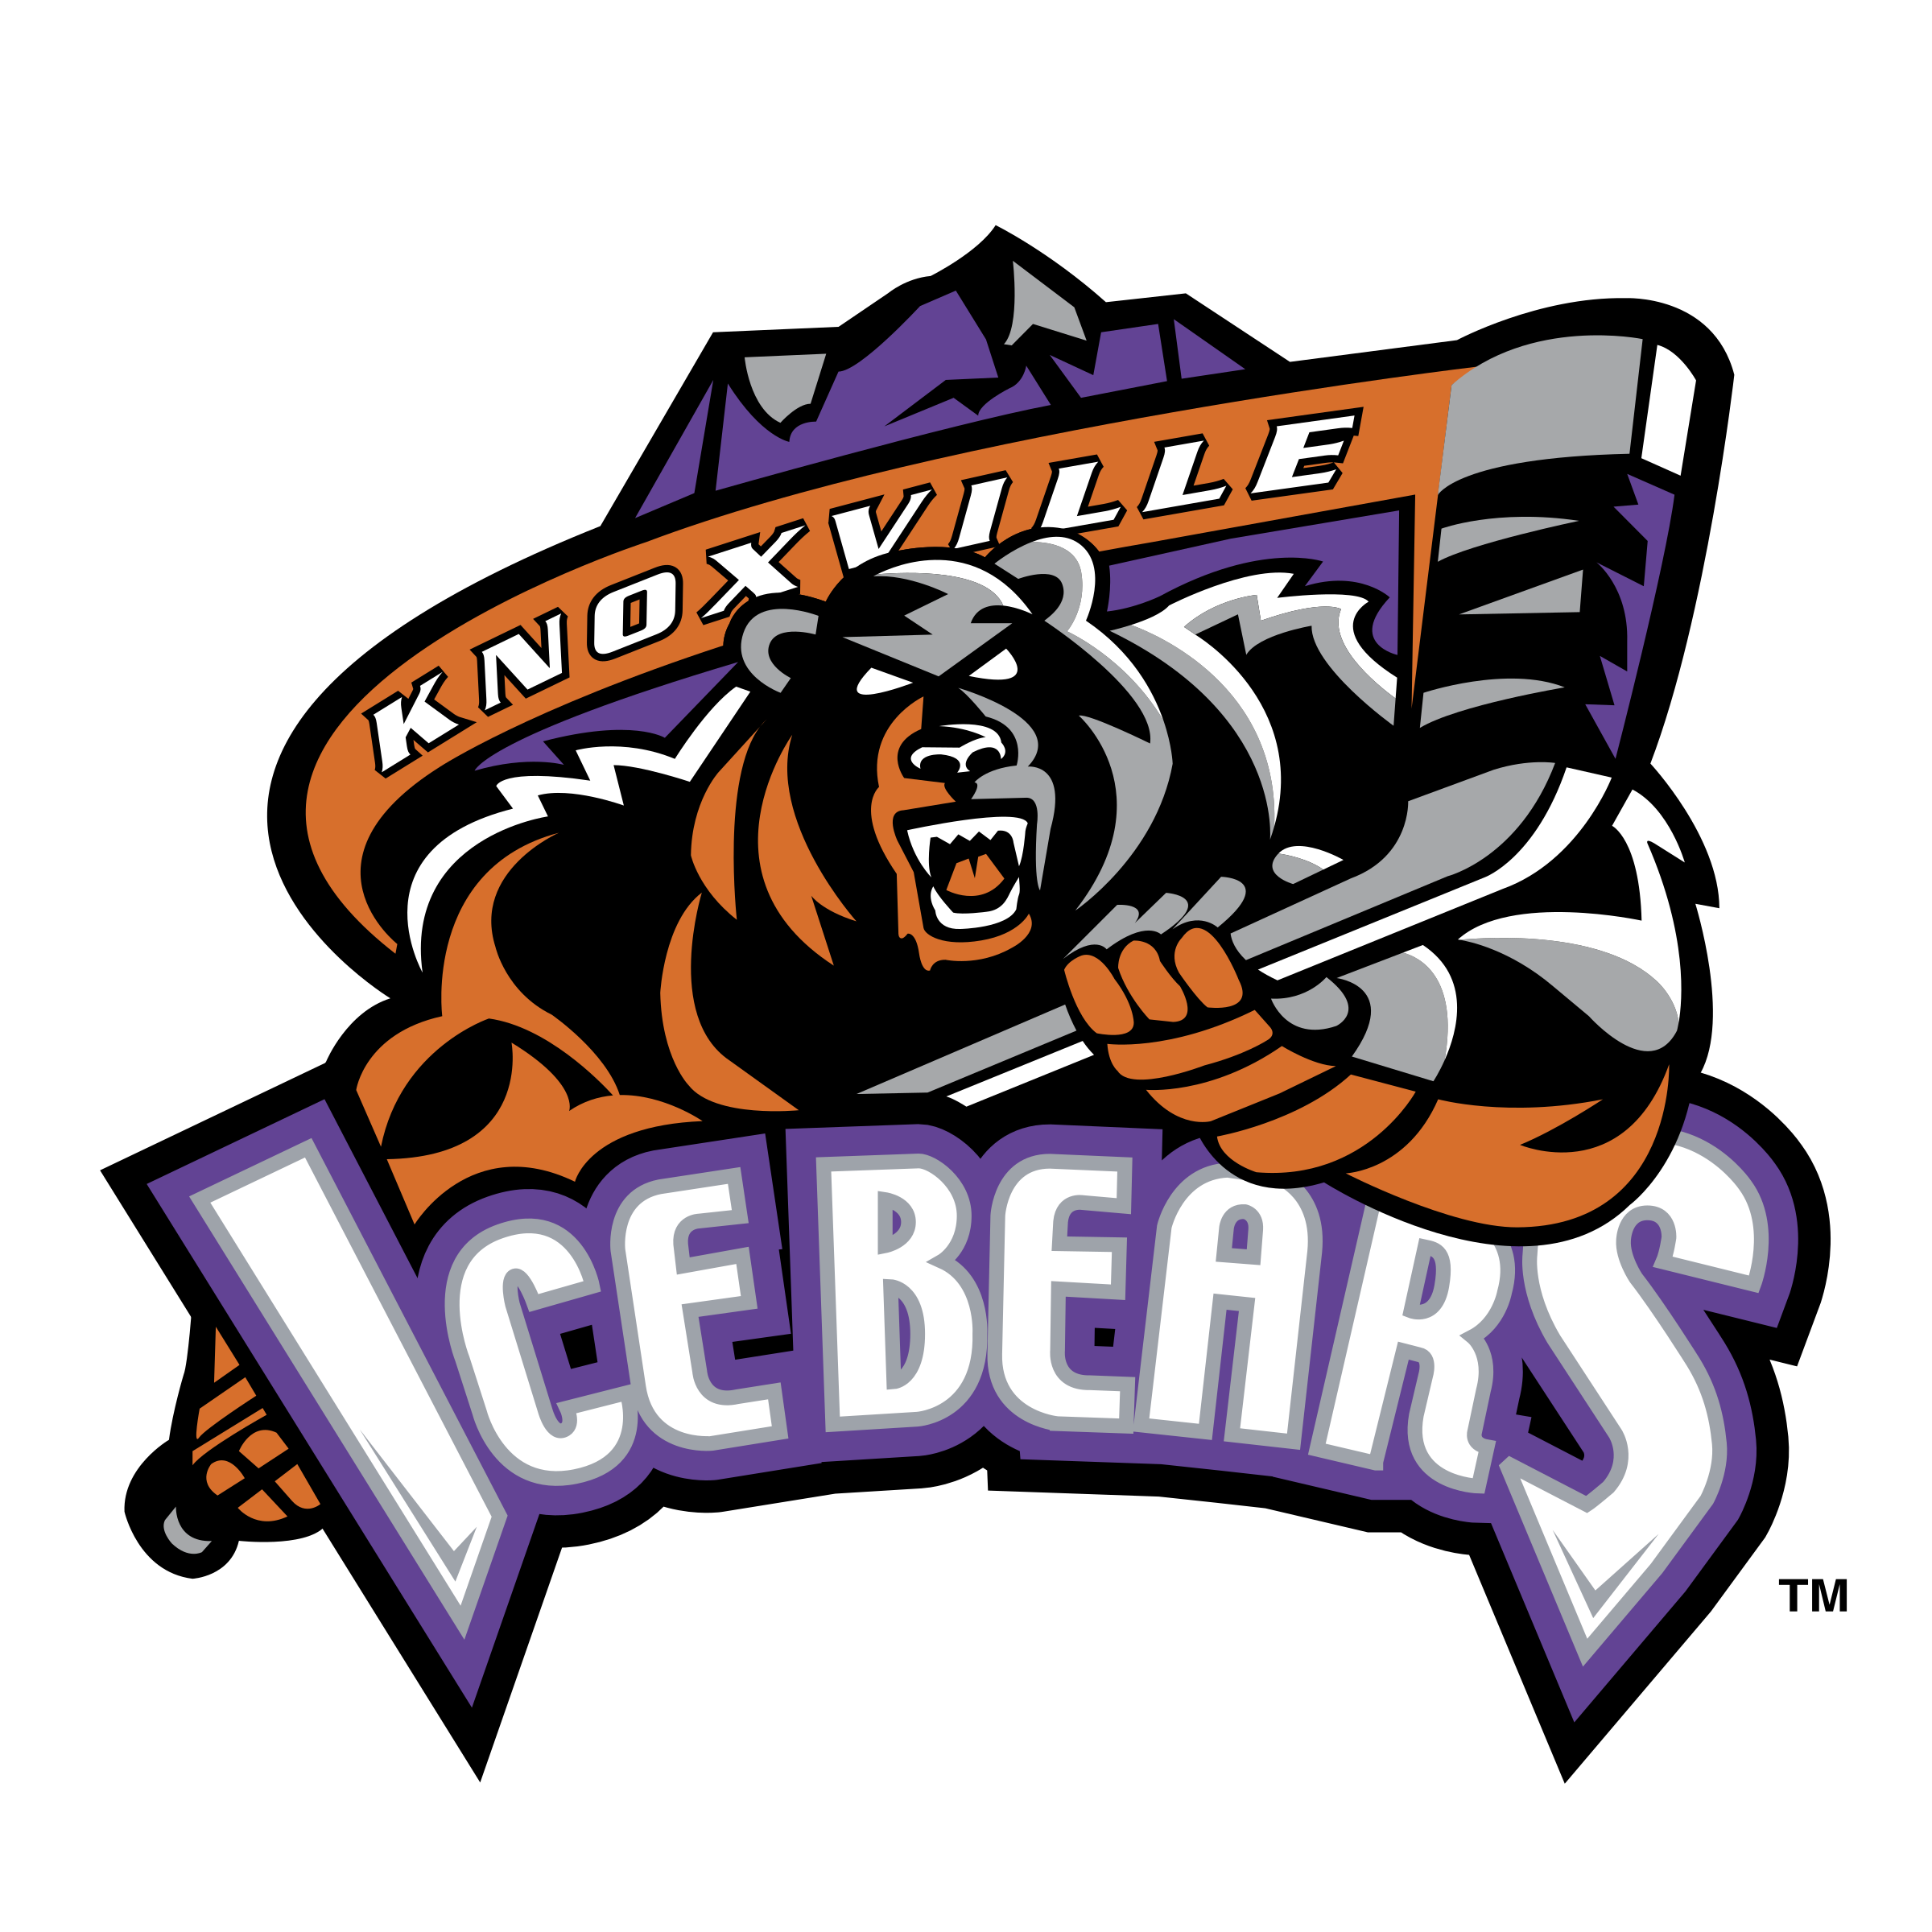 Knoxville Ice Bears Logo PNG Transparent & SVG Vector - Freebie Supply